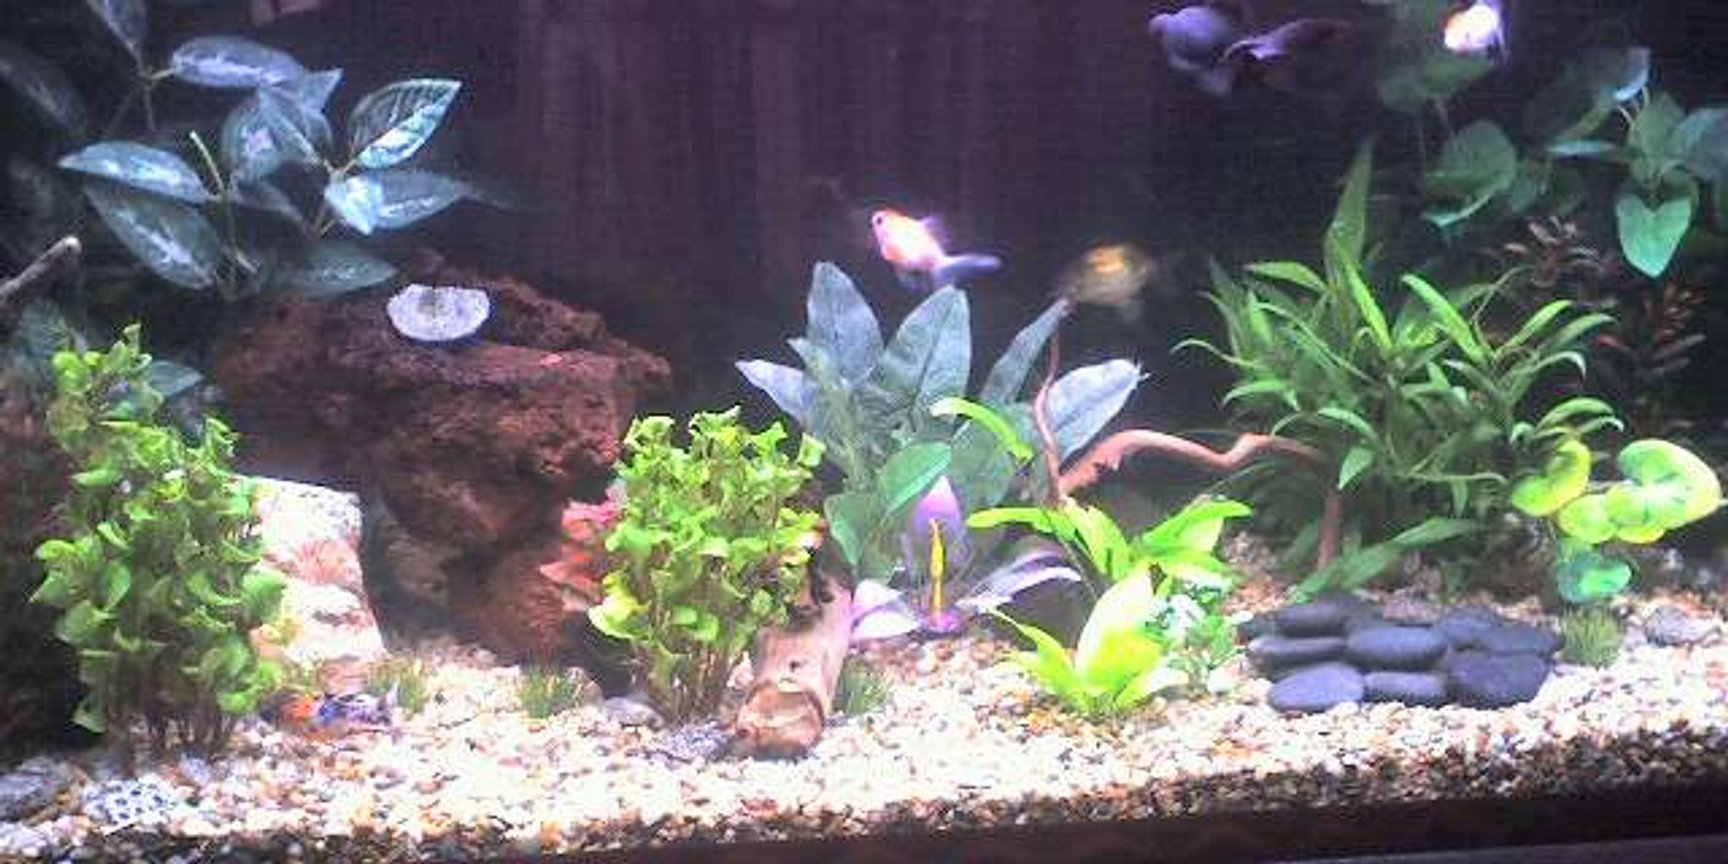 50 gallons freshwater fish tank (mostly fish and non-living decorations) - Freshwater Goldfish tank w/ live & artificial plants & rocks.